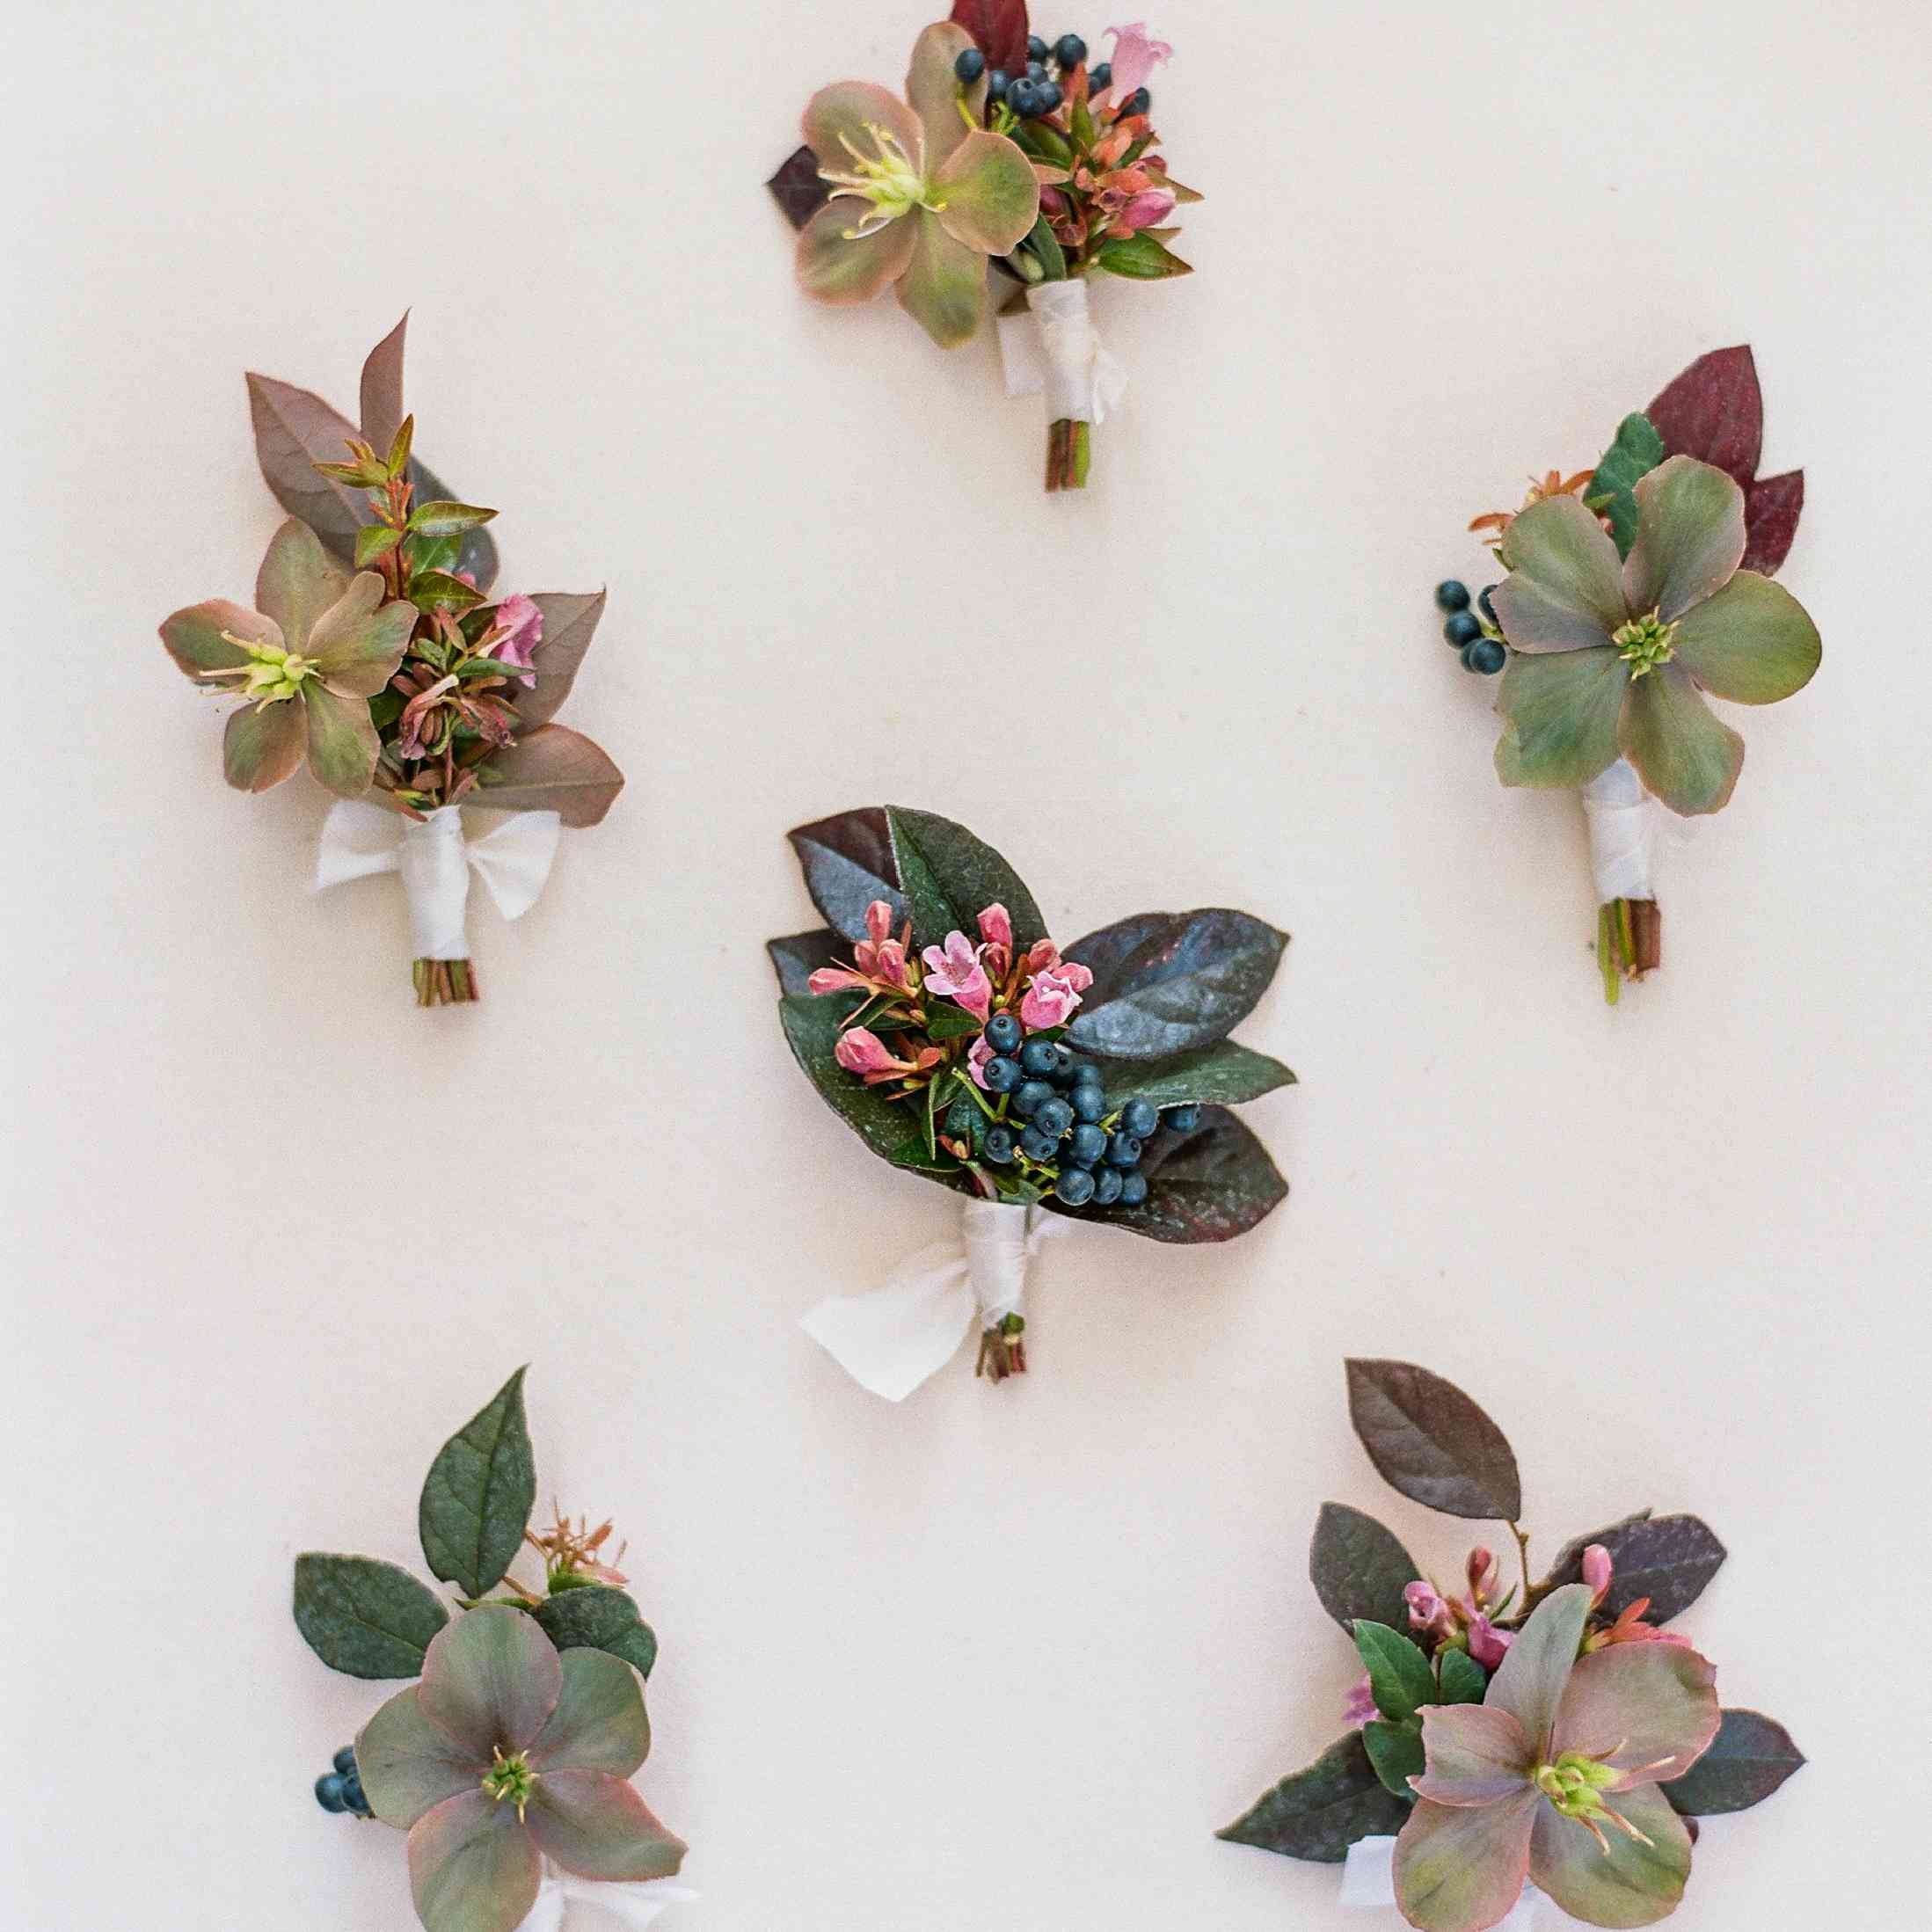 flowers, berries, and greenery boutonniere